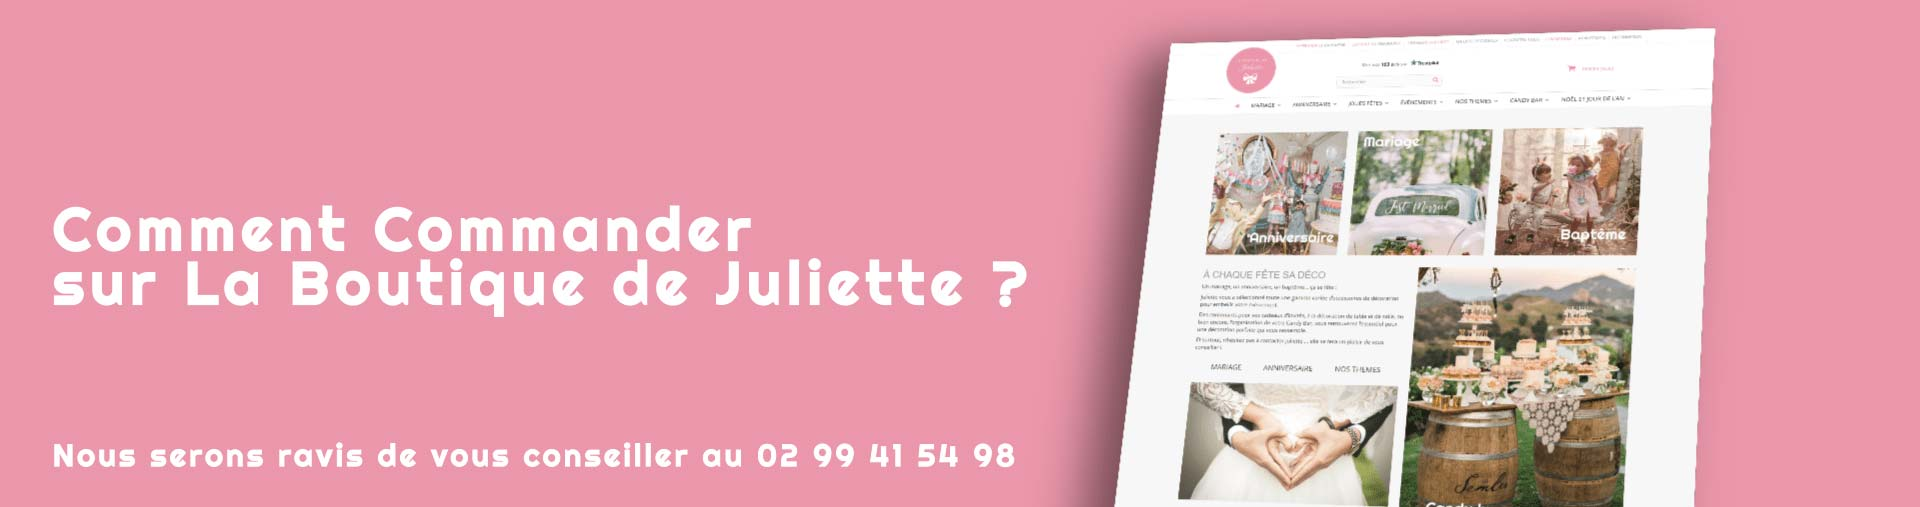 Comment commander sur la boutique de juliette